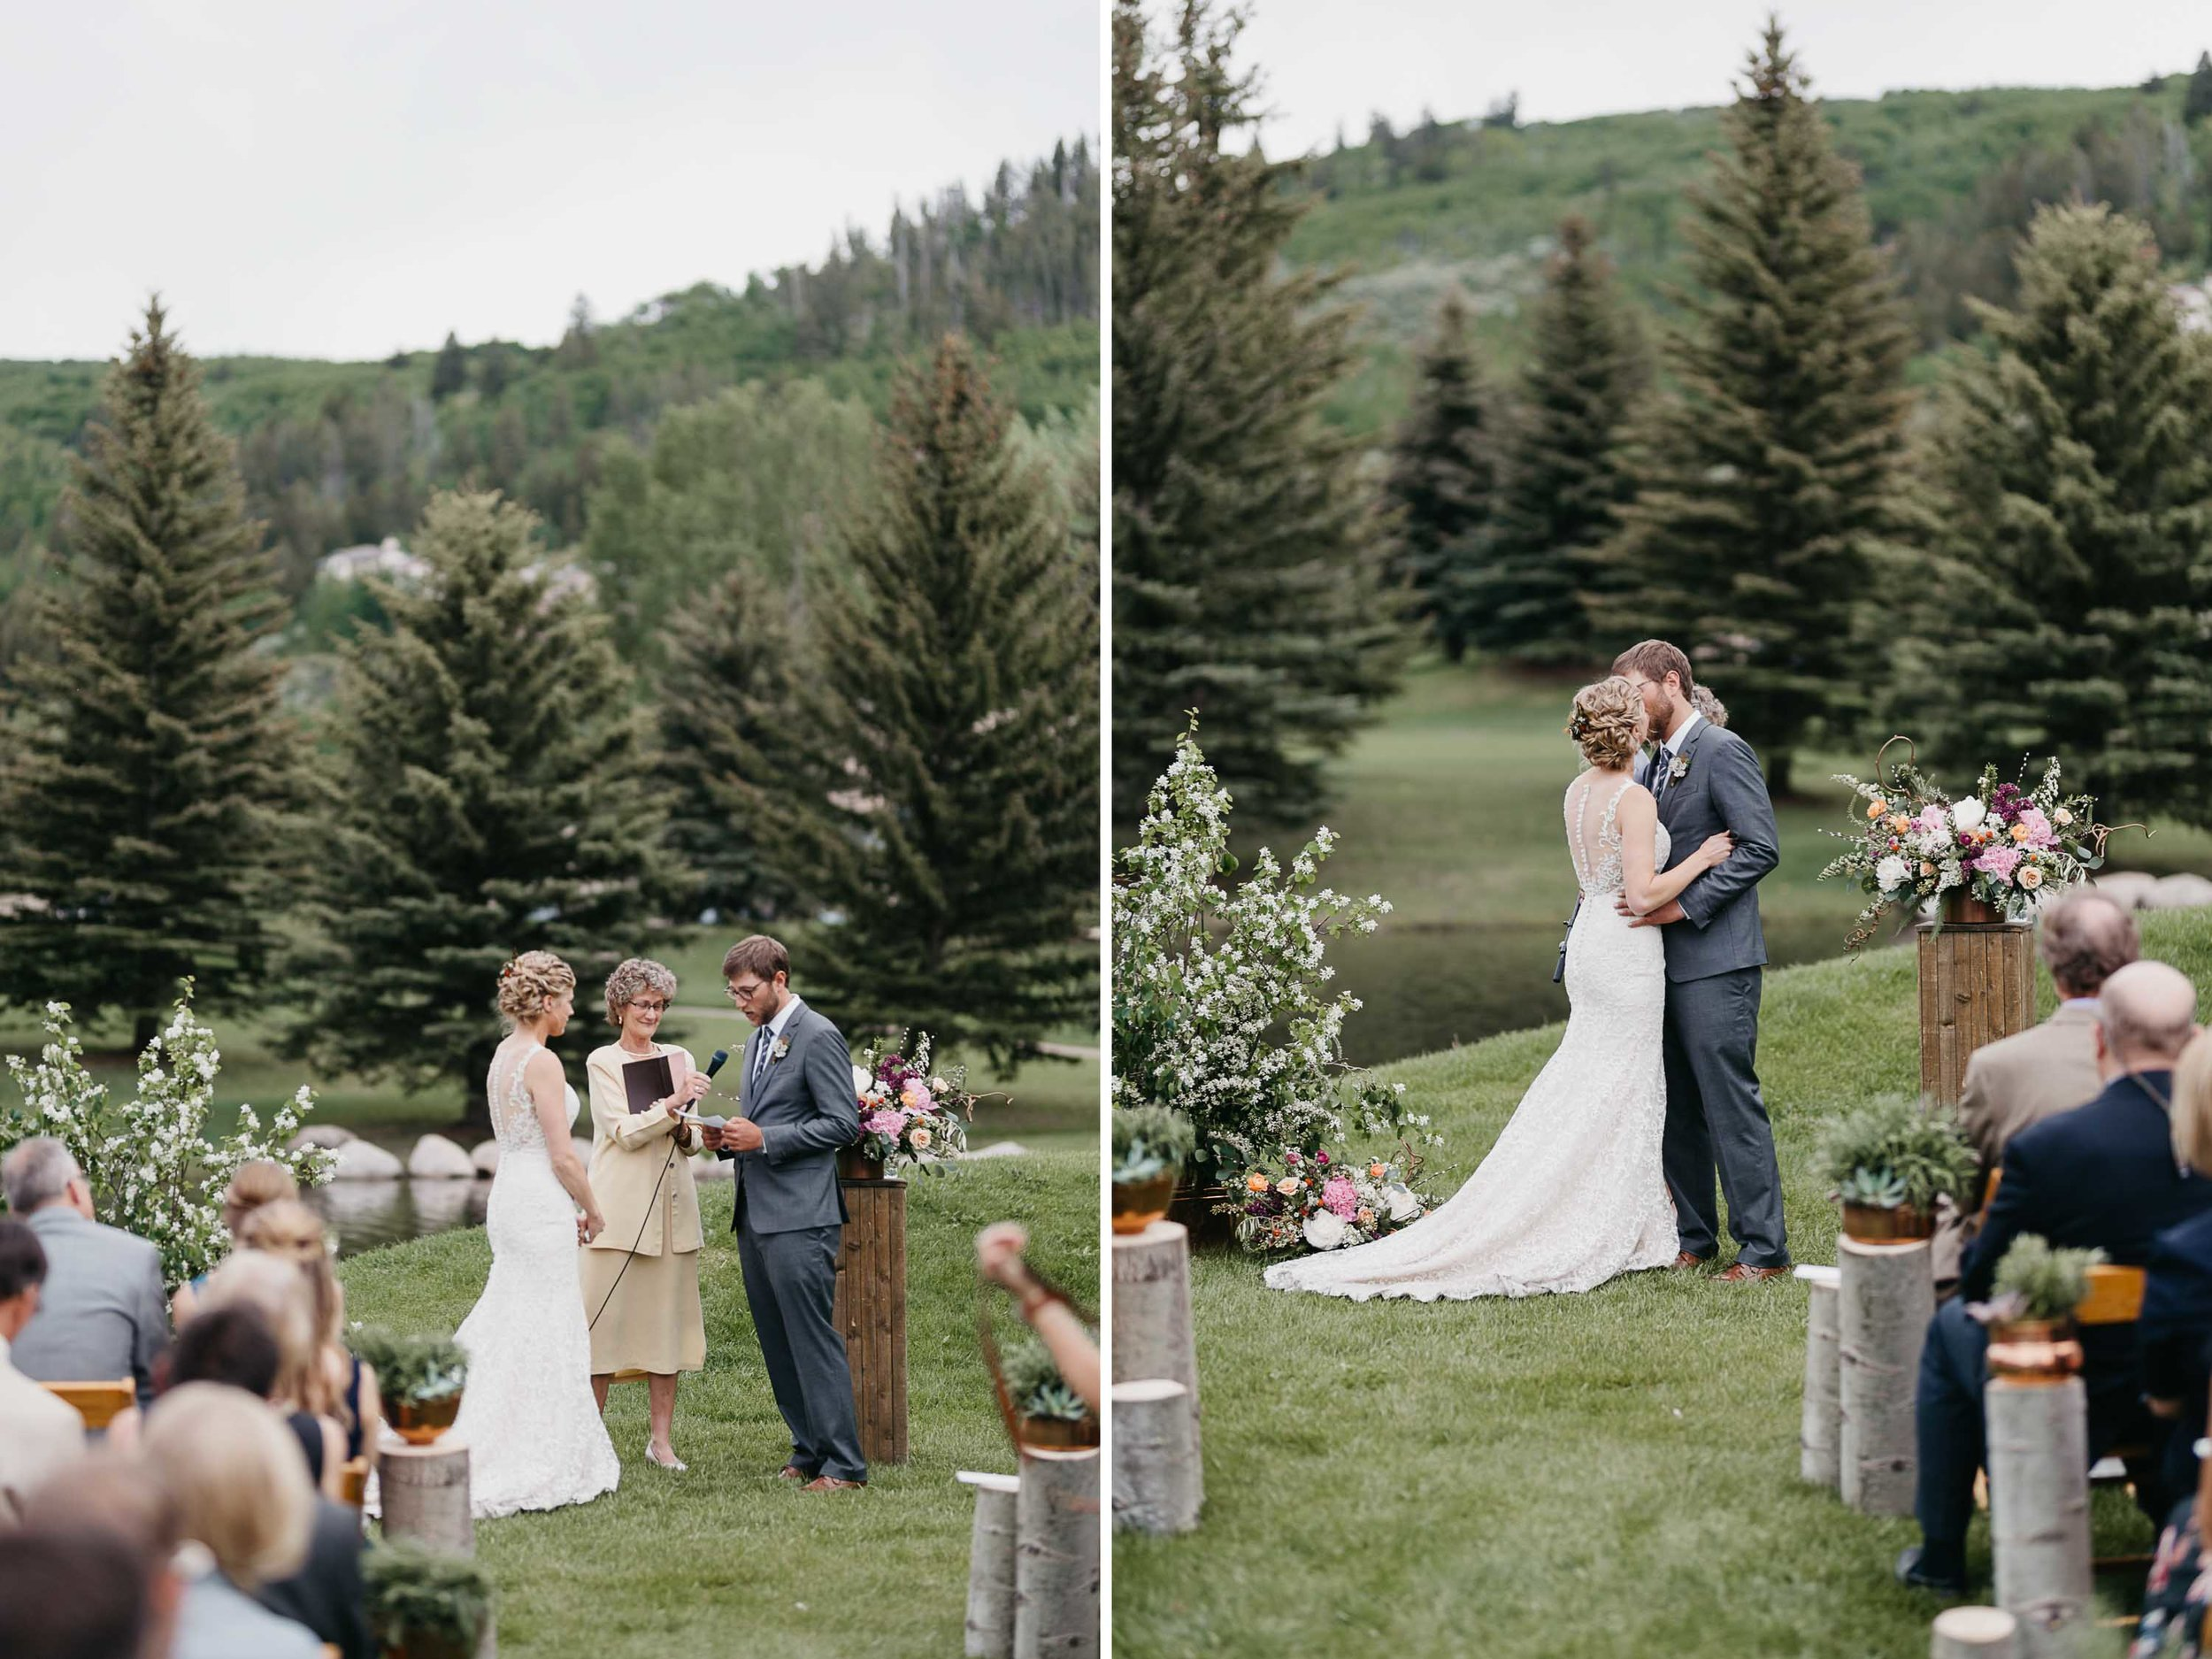 Colorado-Wedding-Photographer-63.jpg